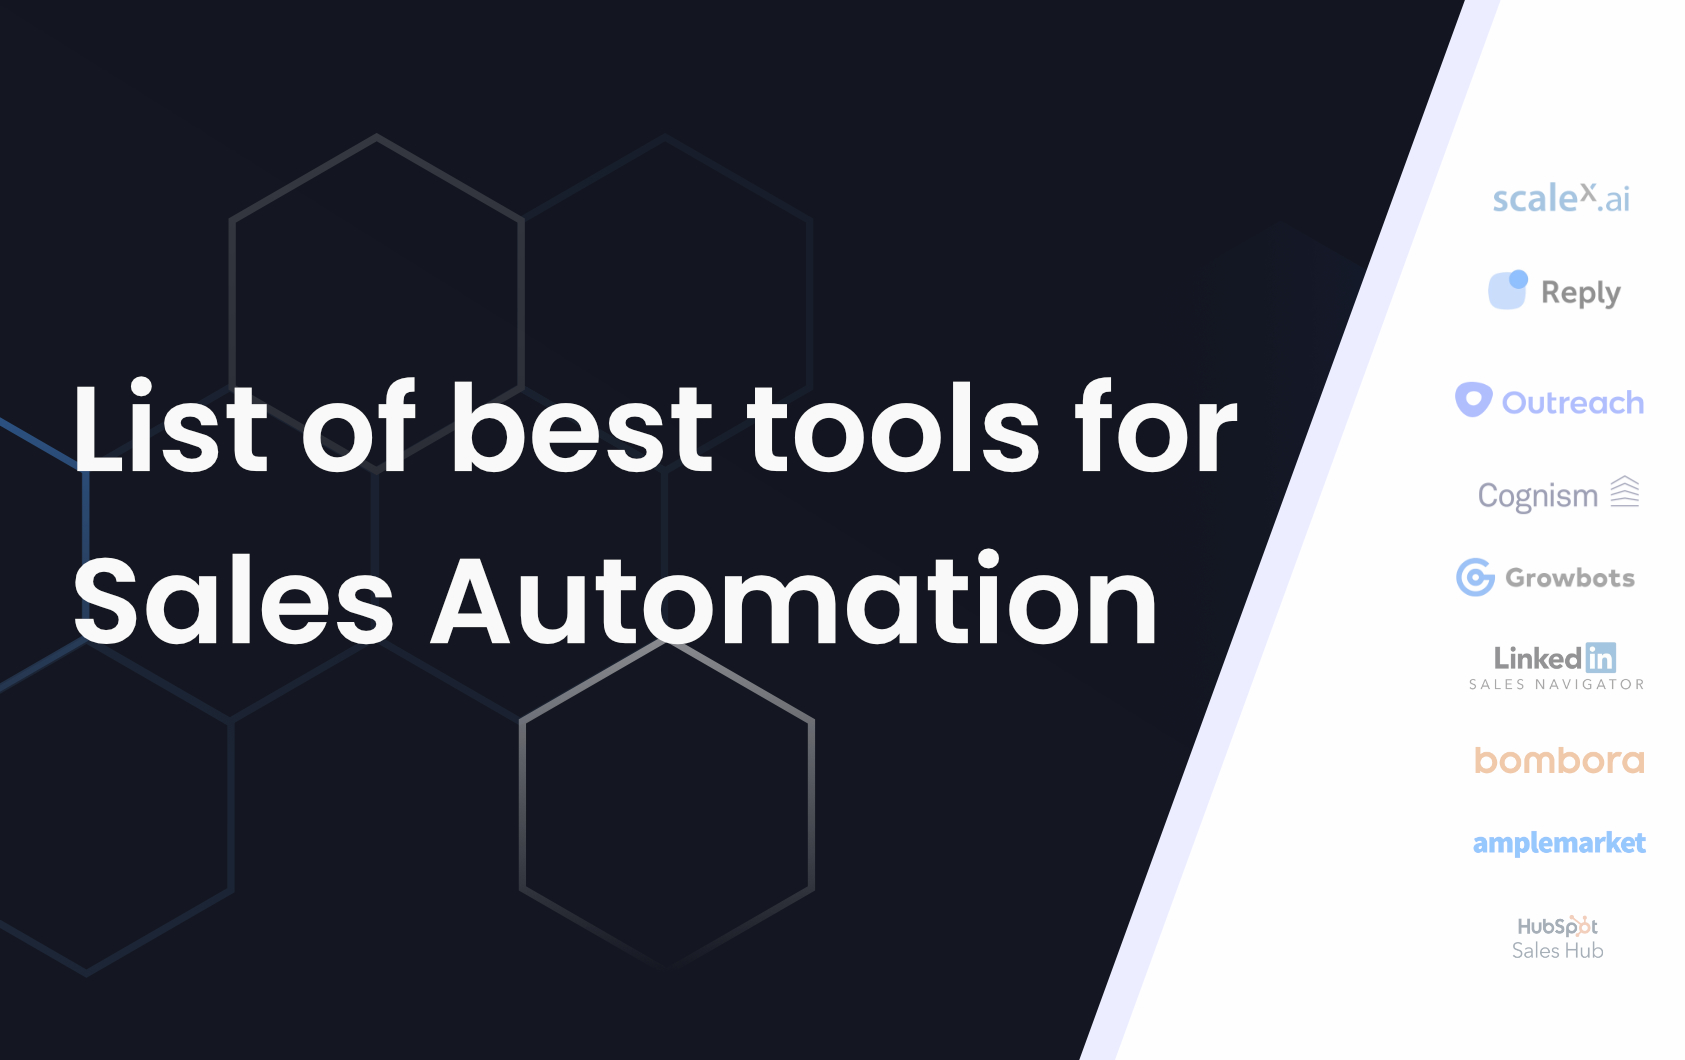 Best Sales Automation Tools for Lead-Generation in 2021